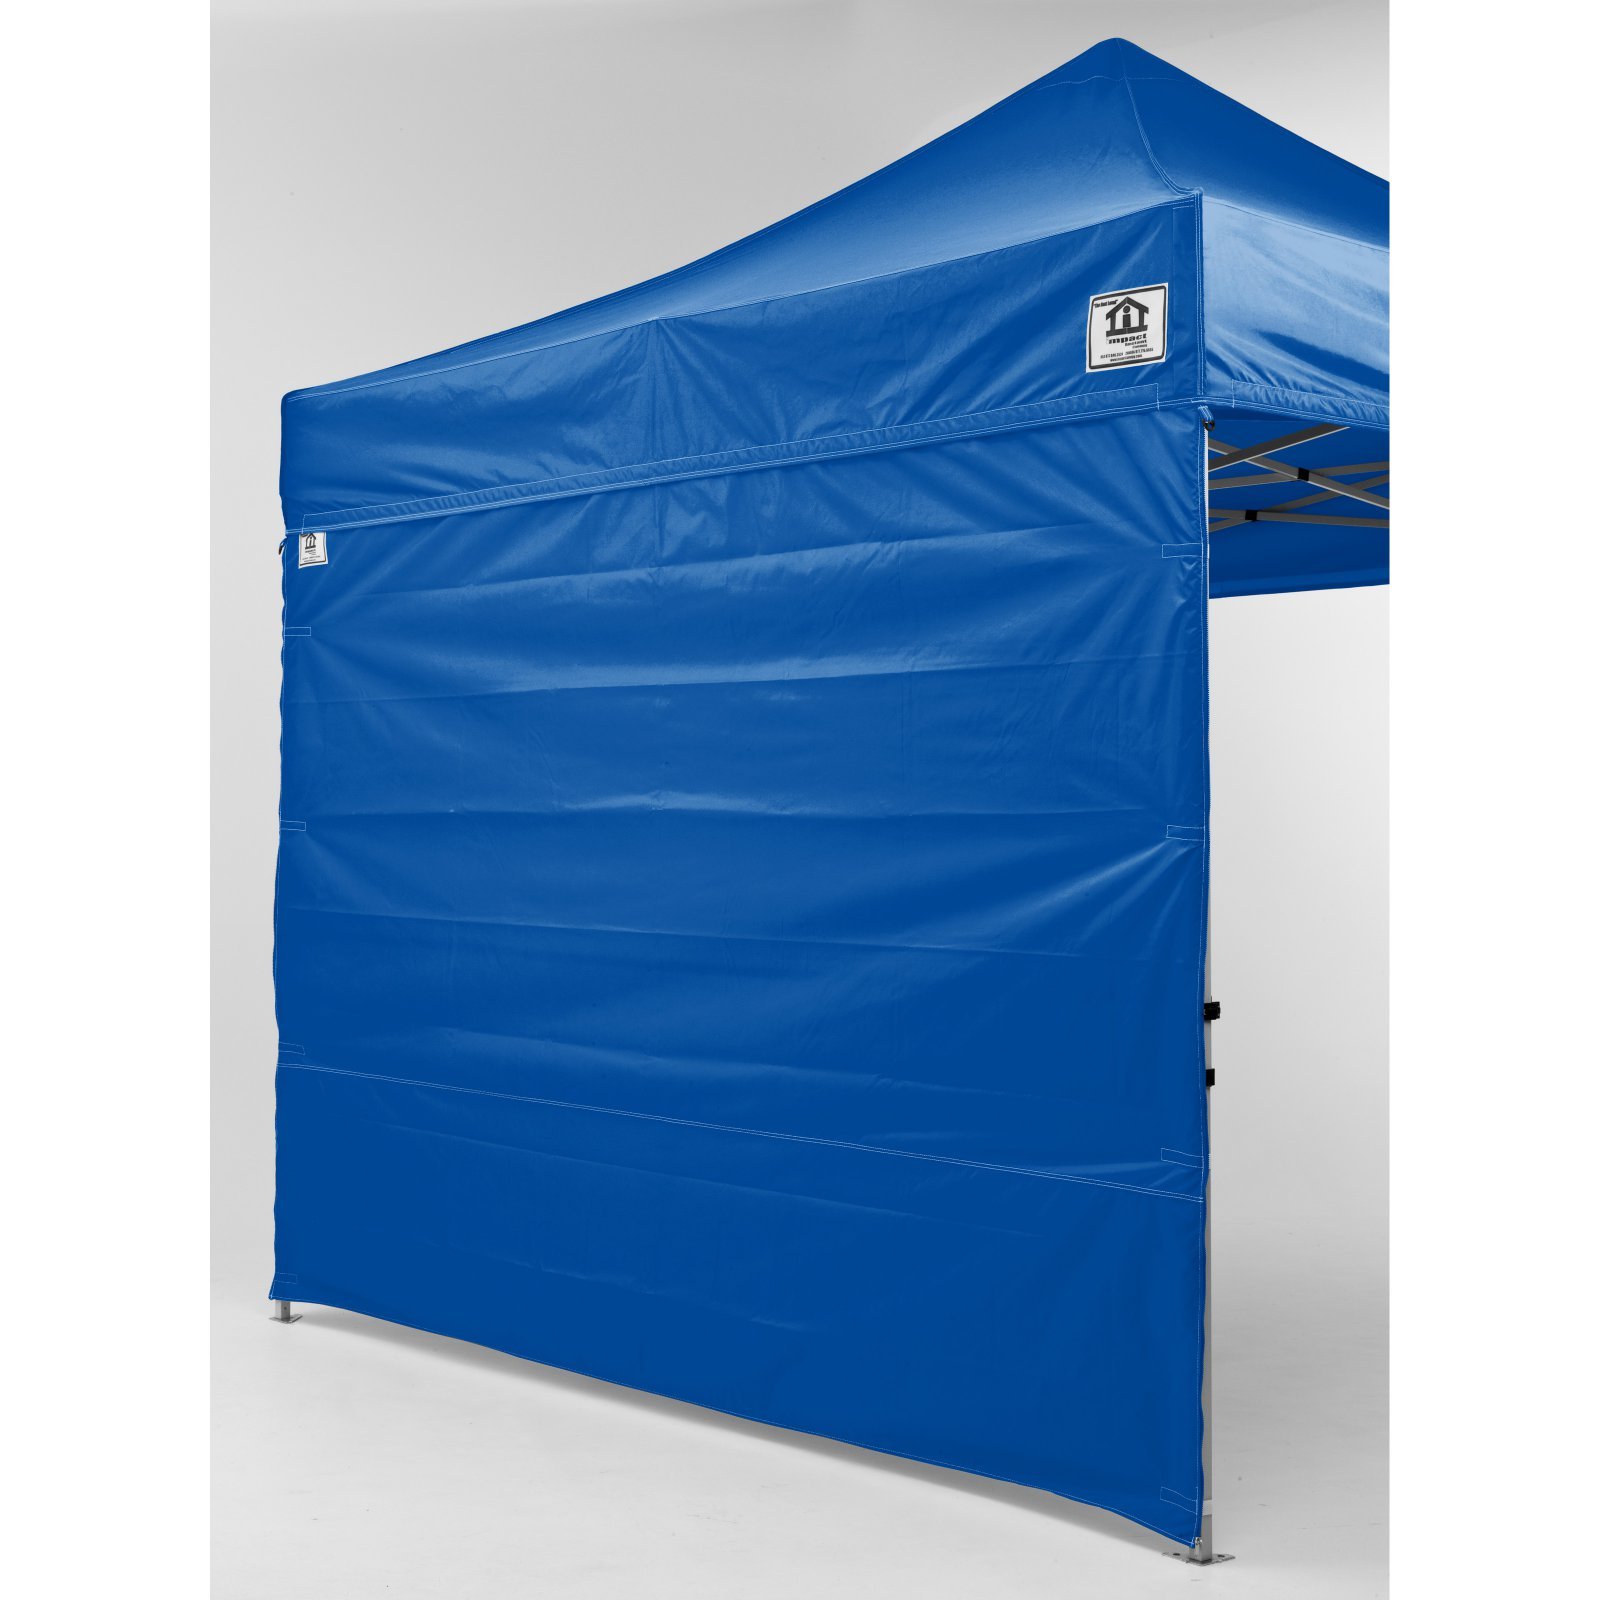 Impact Canopy 10 x 10 ft. Pop Up Canopy with Sidewalls and Roller Bag